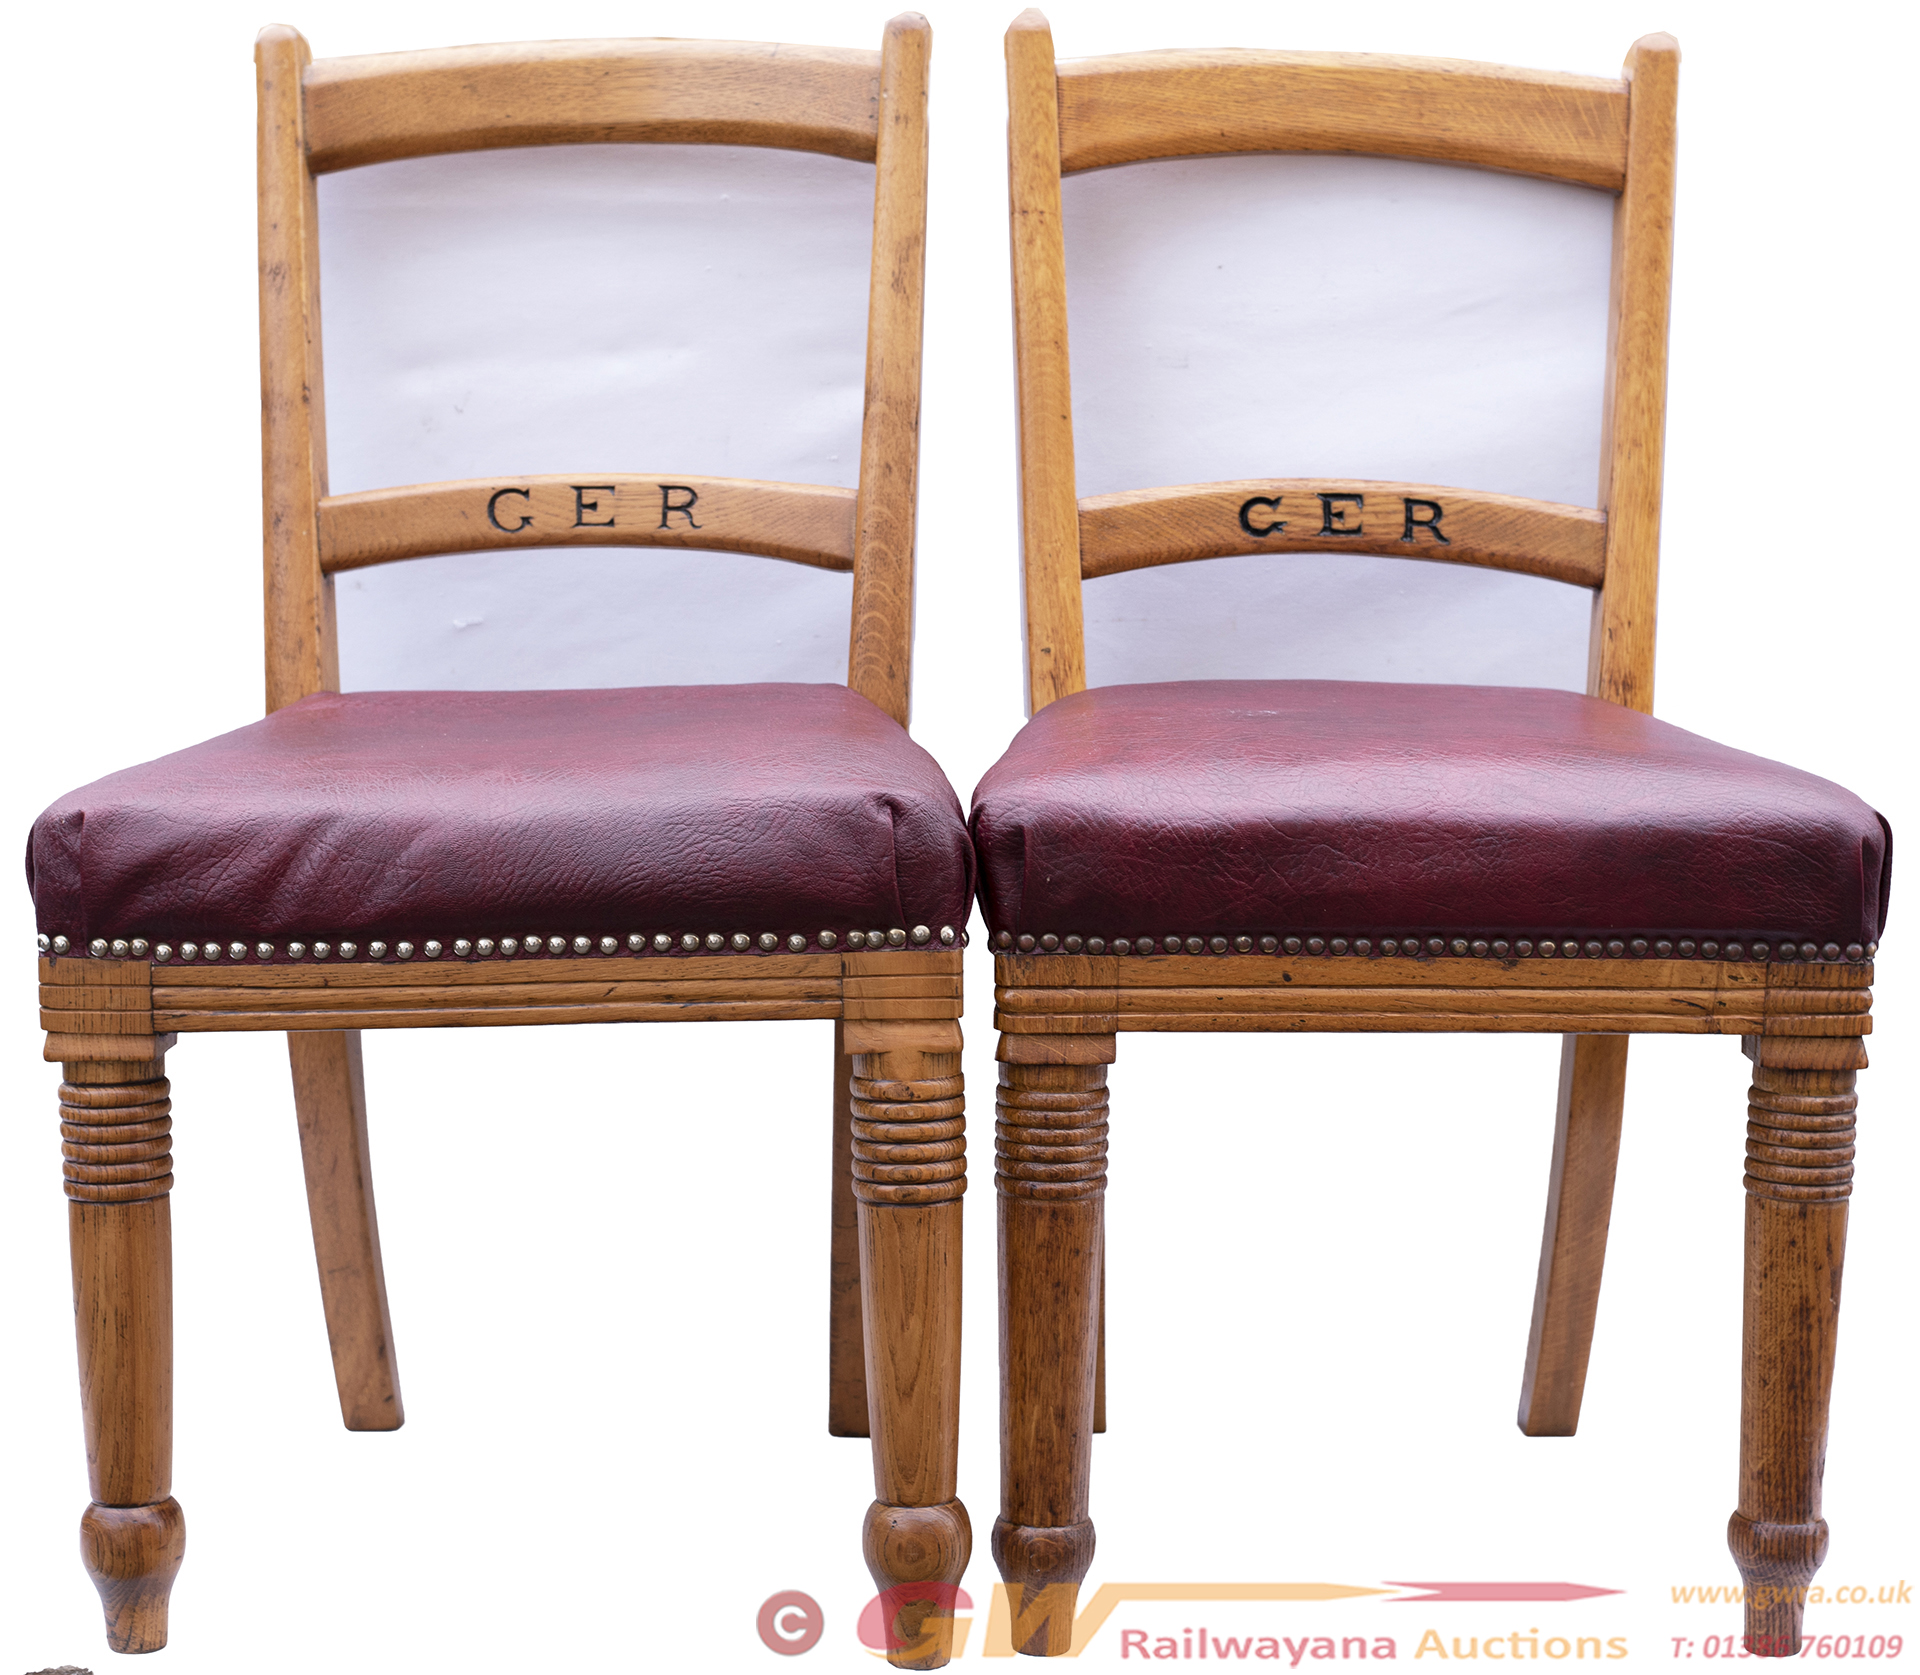 A Pair Of Oak Great Eastern Railway Chairs, Nicely